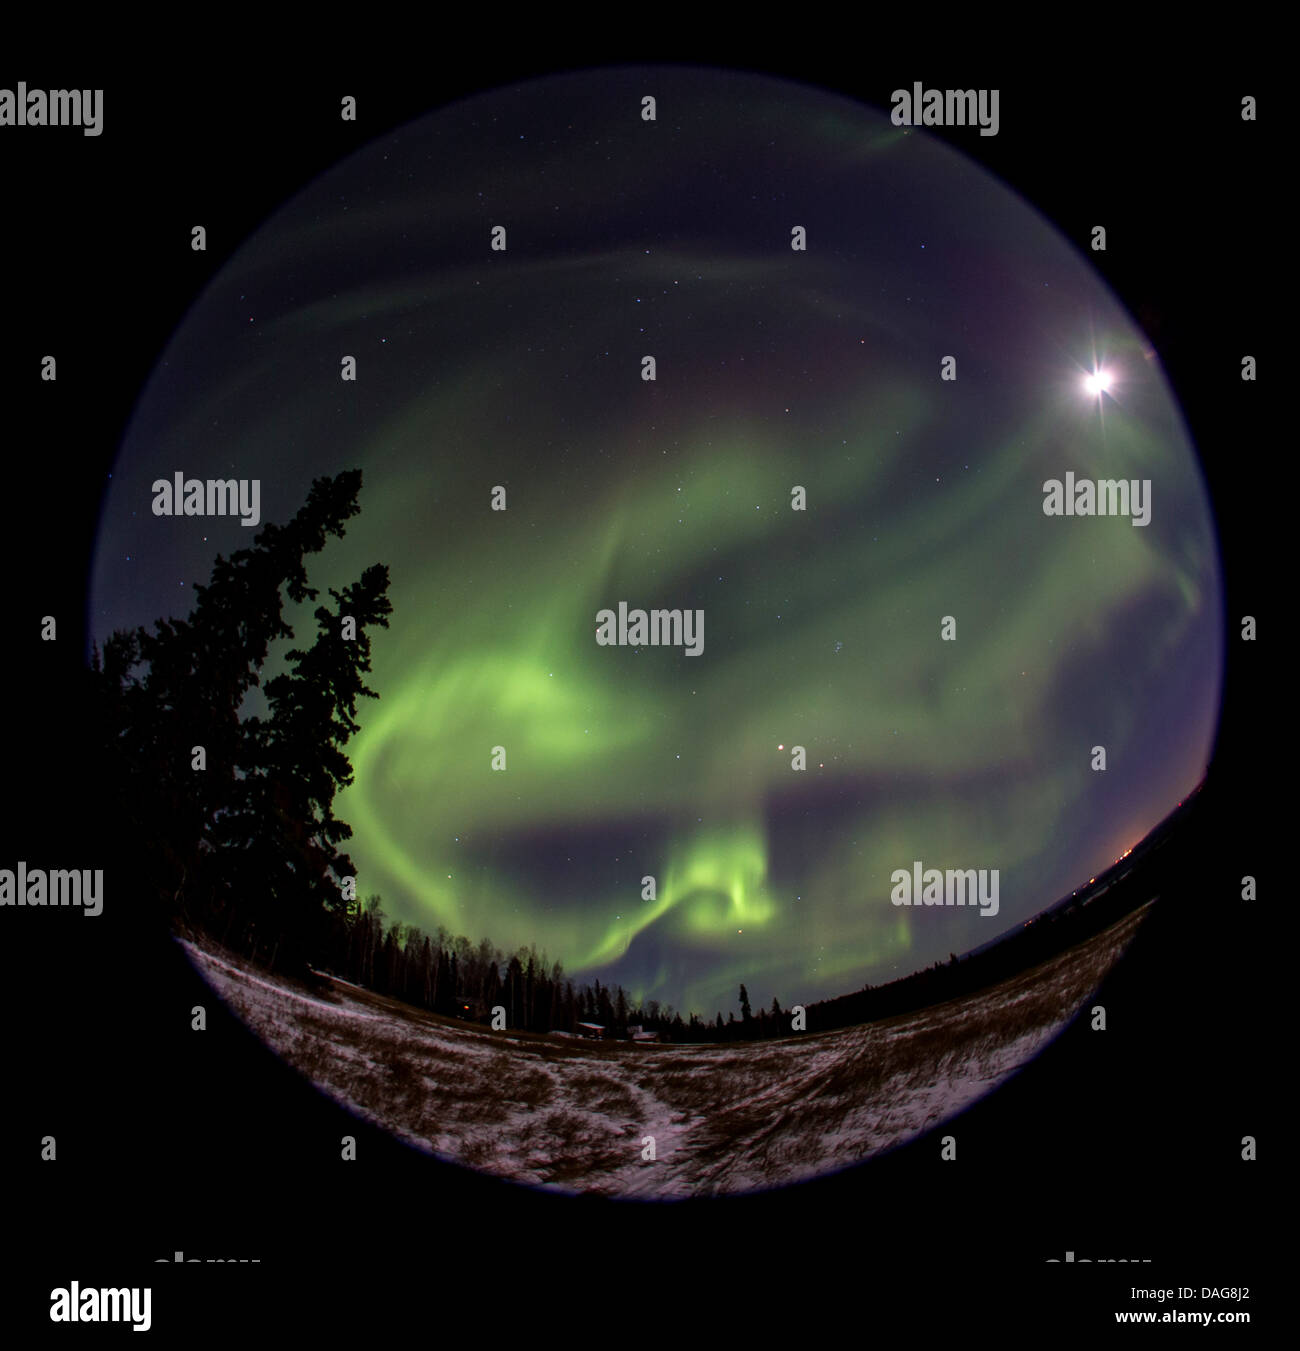 aurora and starry sky with moon over a lone house at a forest, Norway, Troms, Kvaloeya, Kattfjordeidet - Stock Image